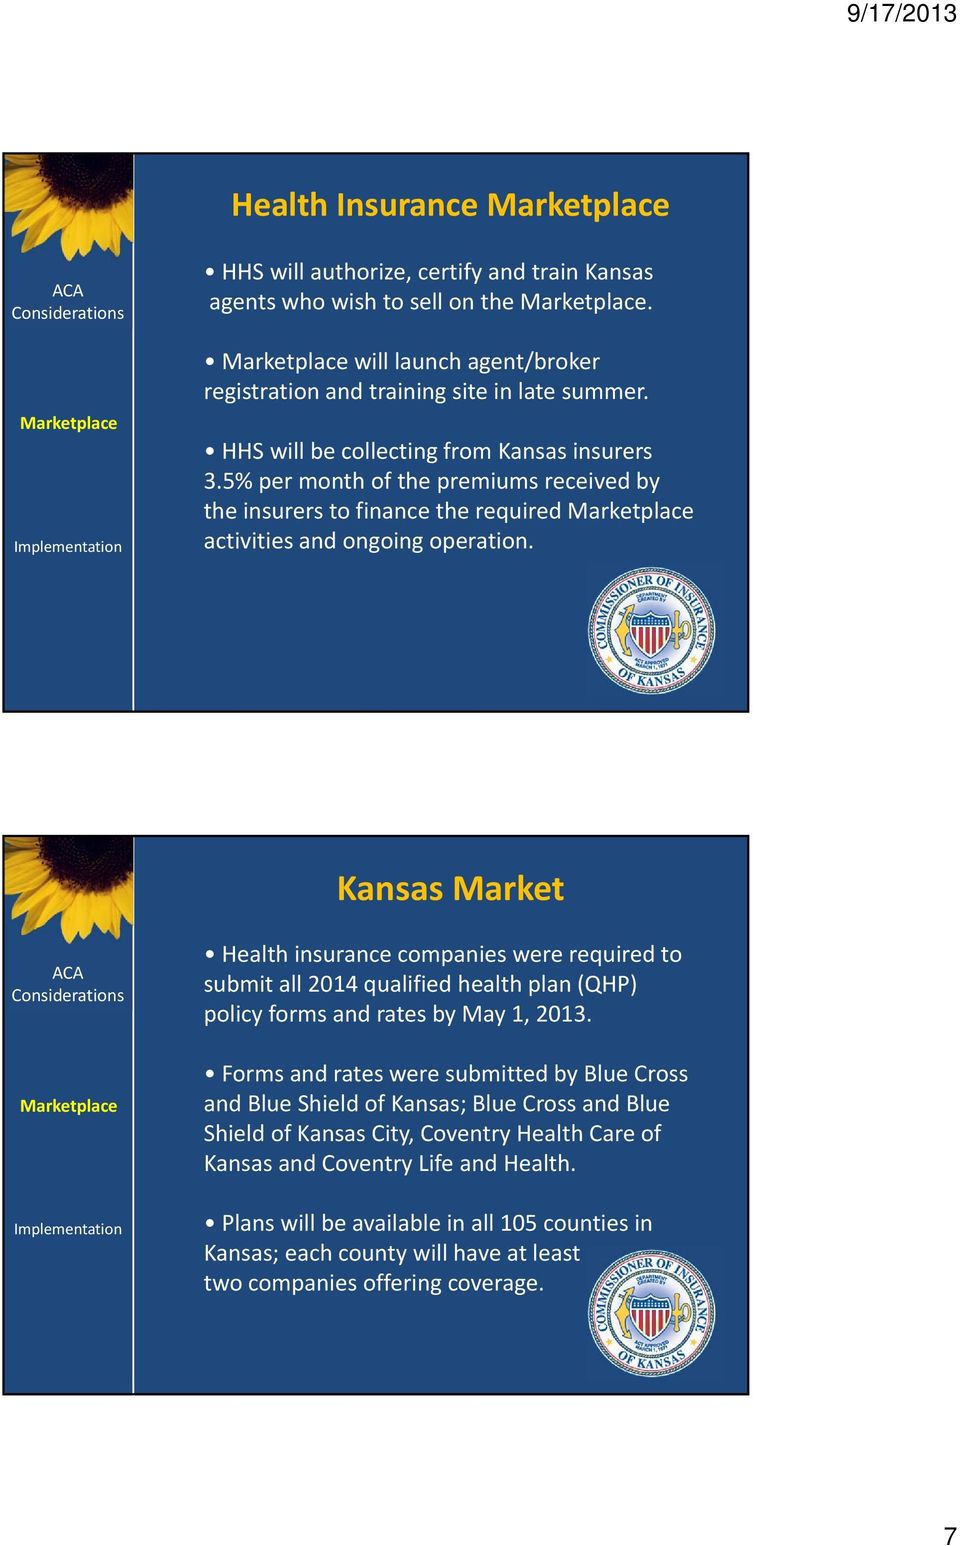 Kansas Market Health insurance companies were required to submit all 2014 qualified health plan (QHP) policy forms and rates by May 1, 2013.